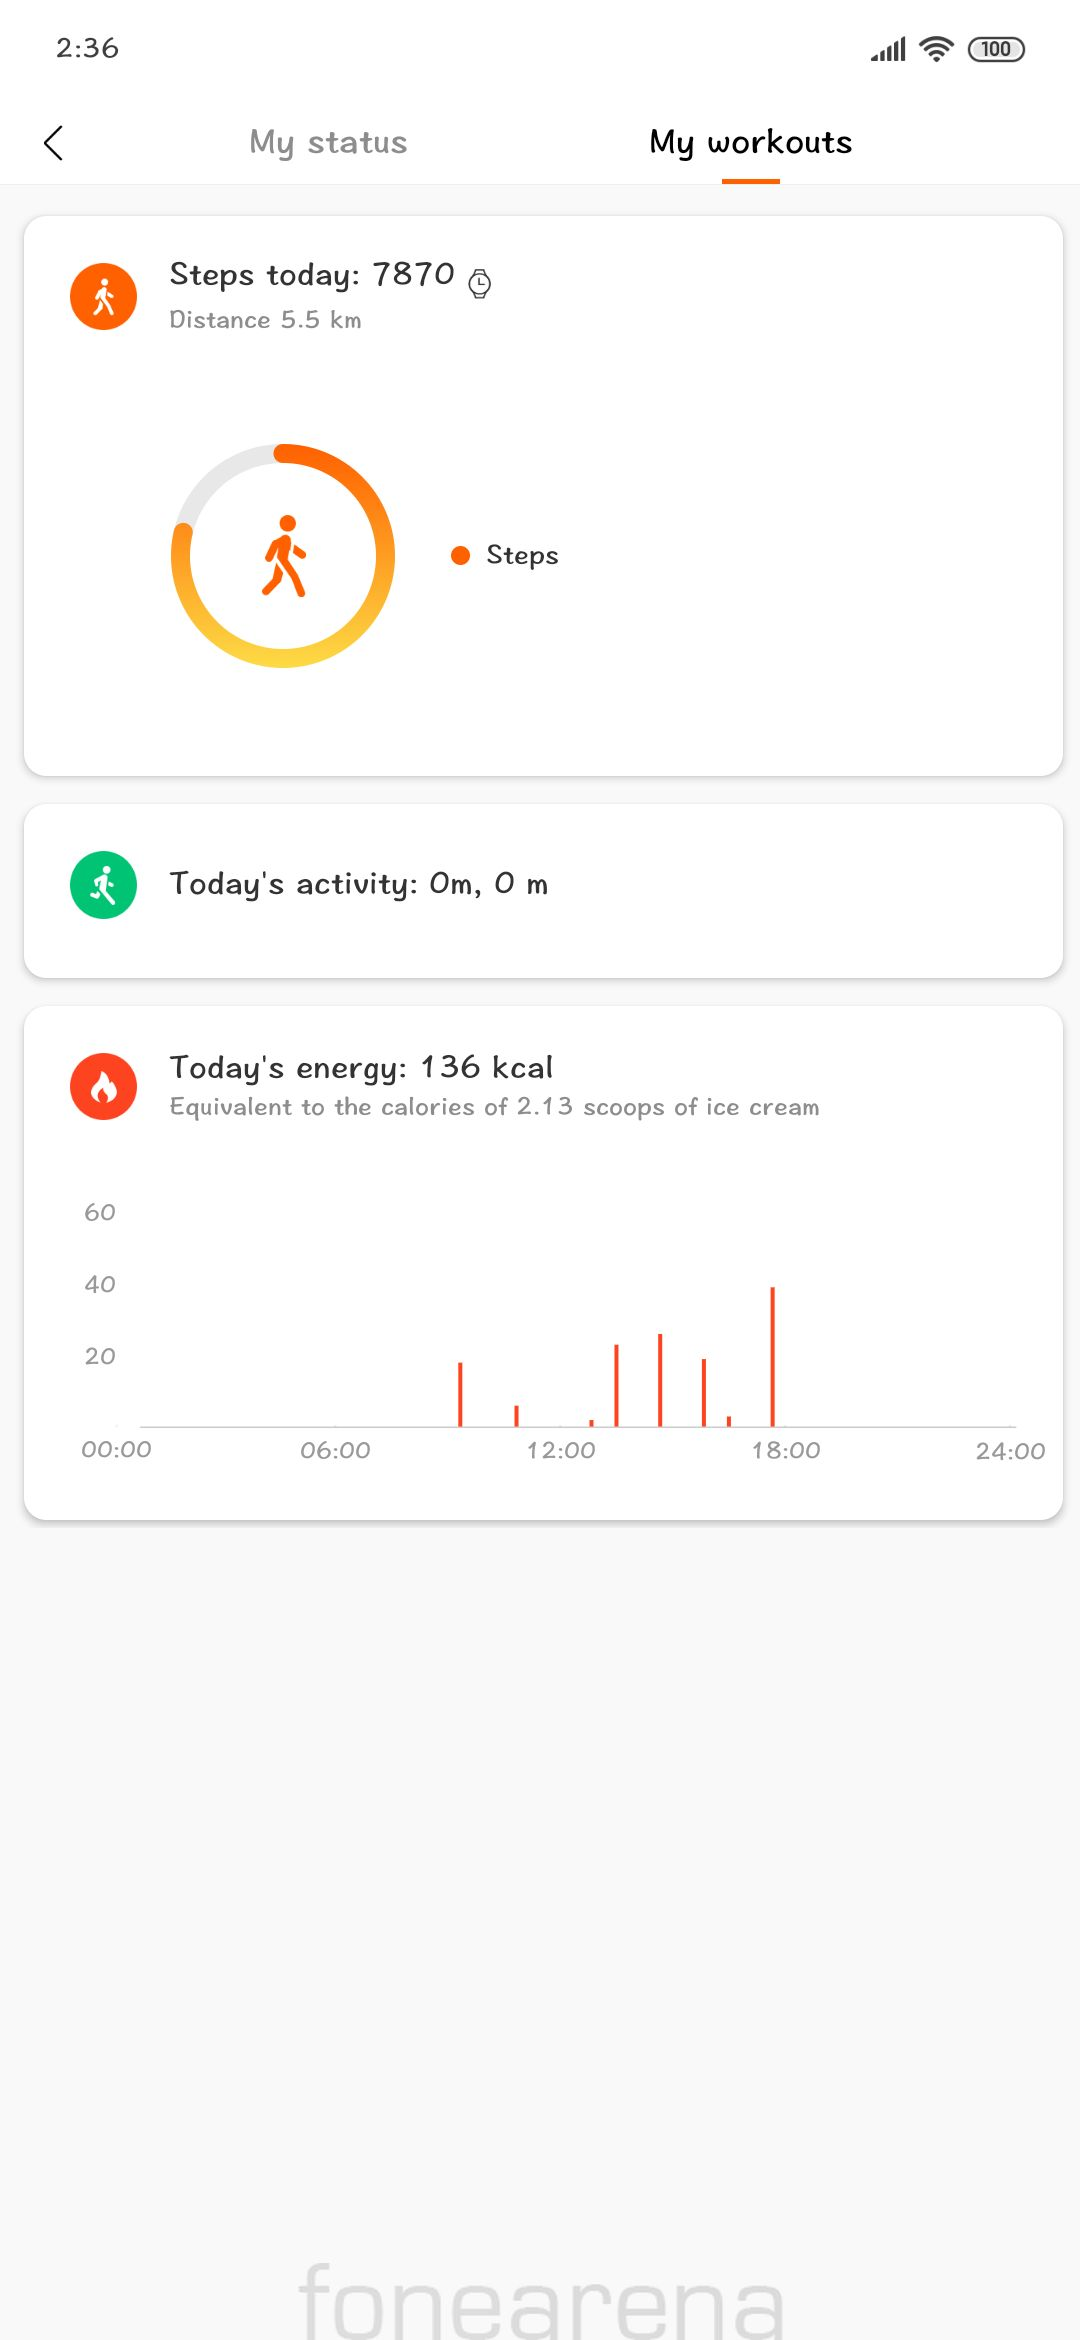 Mi Fit 4 0 update brings new UI, optimized data view and more